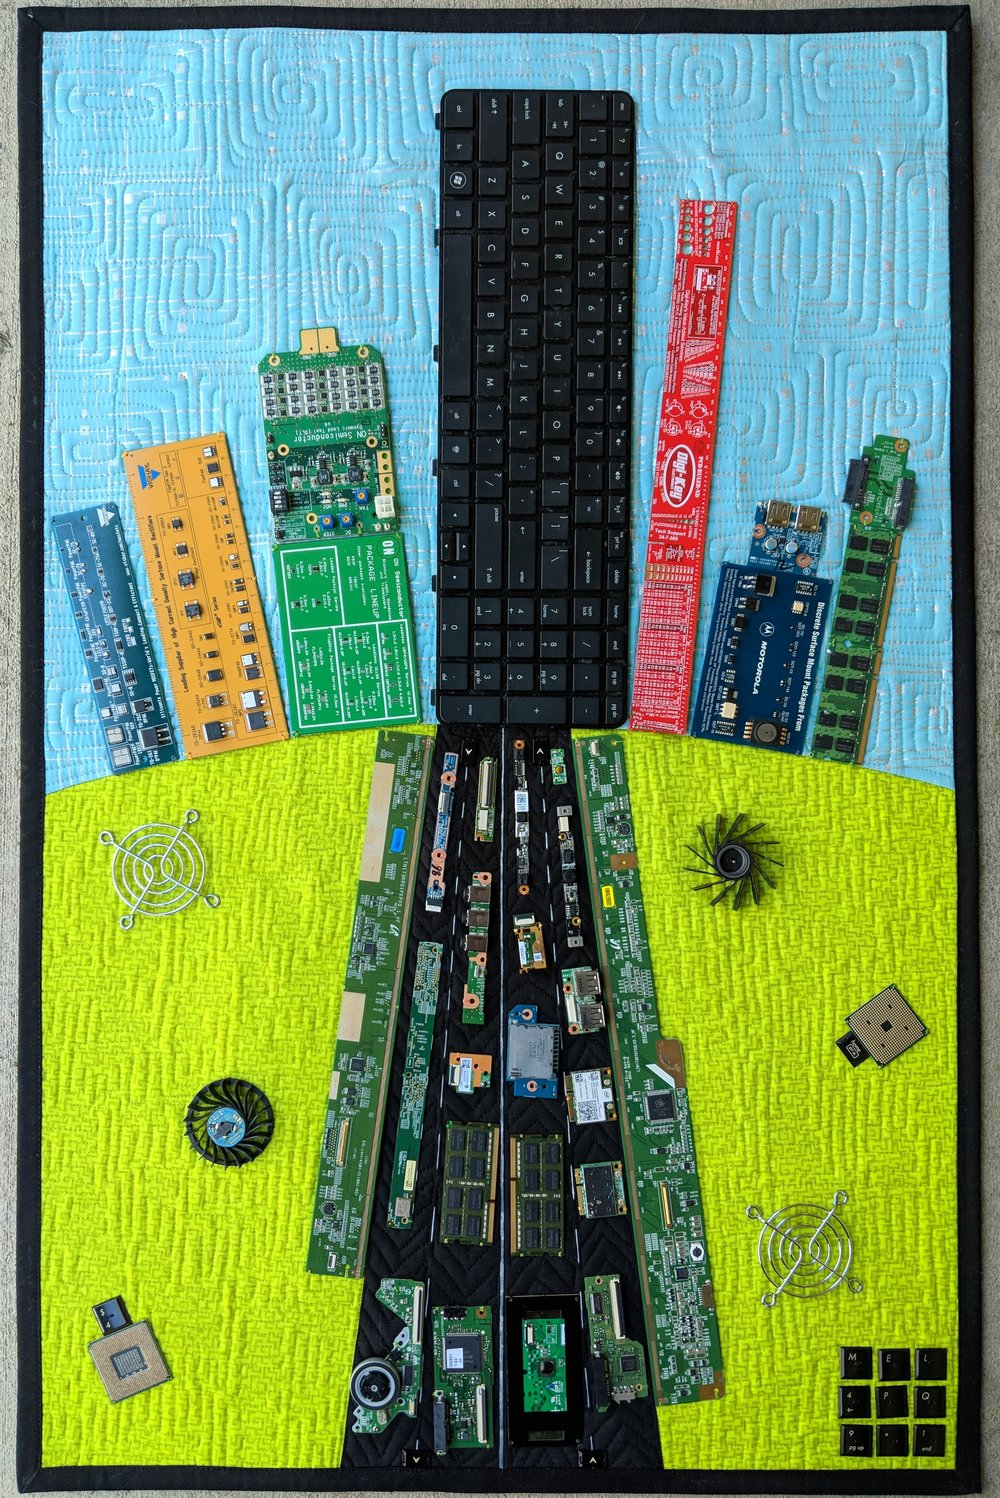 """1. Do You Know the Way to San Jose?  January 2018 22"""" x 34"""" San Jose/Silicon Valley is home to a growing number of high-tech companies, causing a major shift in the area's demographics, housing market, traffic, and local art scene. This abstract cityscape reflects the confluence of both industries: hardware as symbolized by the two upcycled HP laptops (note that HP was founded in Silicon Valley) and software, as represented in the printed fabrics and free-motion quilting in the background. The skyscrapers are indicative of the changing housing landscape towards more and more high-density apartments, several of which have been constructed near the San Jose Museum of Quilts & Textiles. The congested highway represents the swell in population, which has overwhelmed the current infrastructure, and has generated a mass exodus of families, working professionals, and artists who can no longer afford to live, work or create here in the Bay area.  Exhibits/Awards: Pacific International Quilt Festival (October 2018), won Viewer's Choice in Project Quilting's Hometown Proud weekly challenge (January 2018).   Blog Post"""